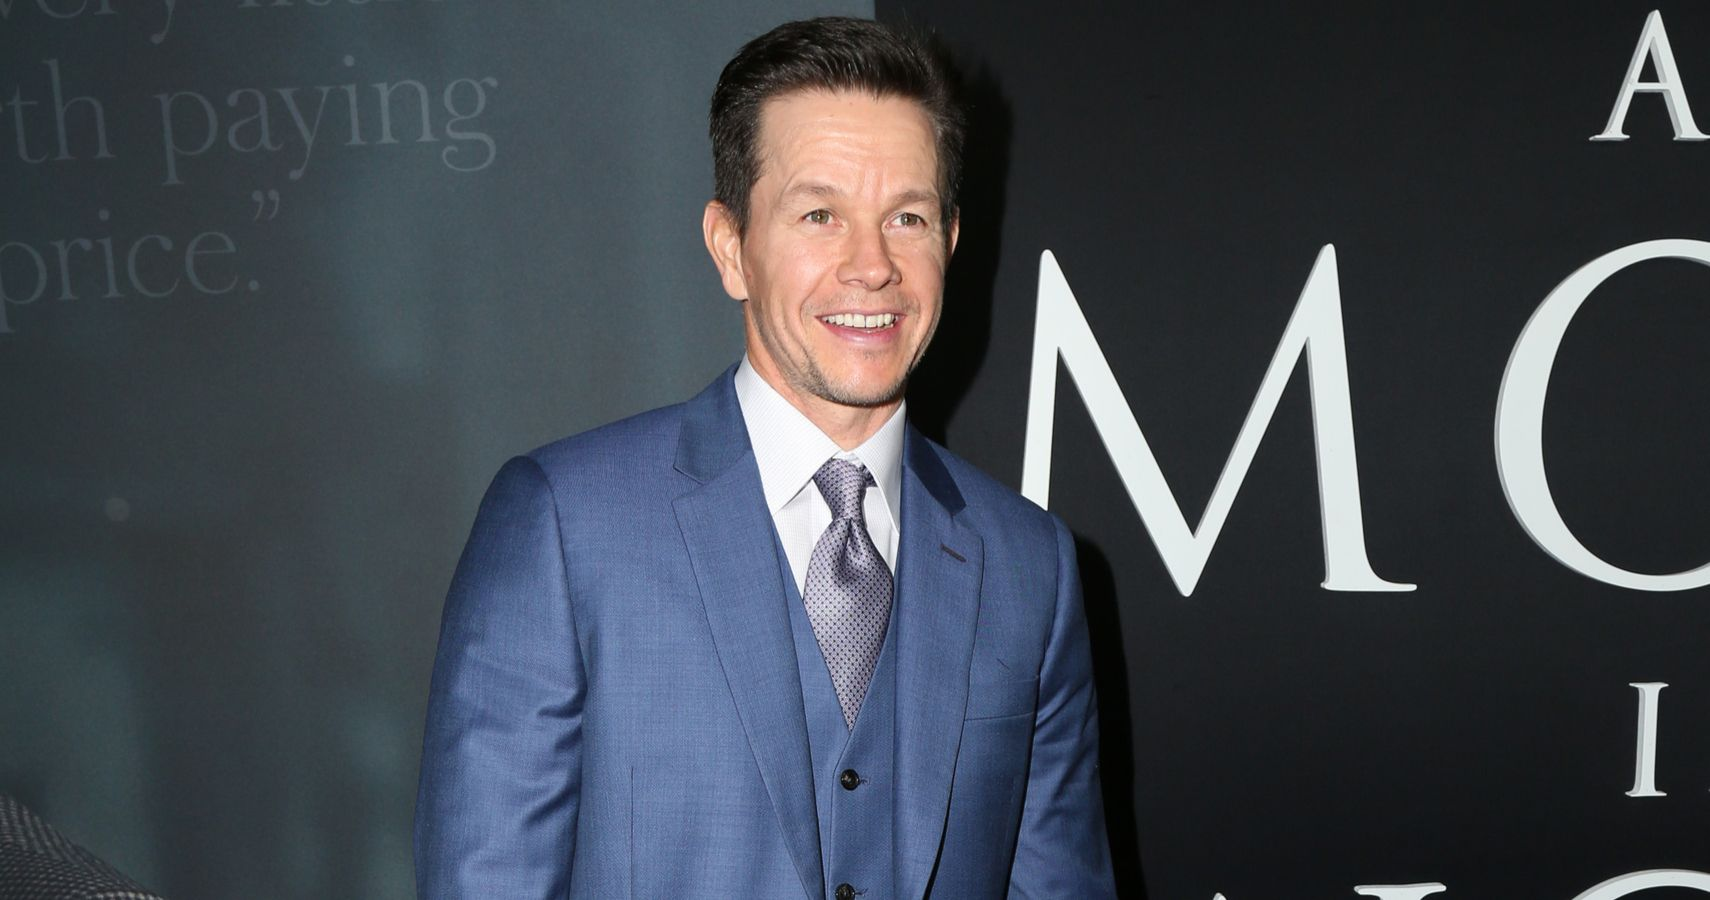 The Wahlberg Garage: 8 Stunning Cars In Mark Wahlberg's $2 Million Collection